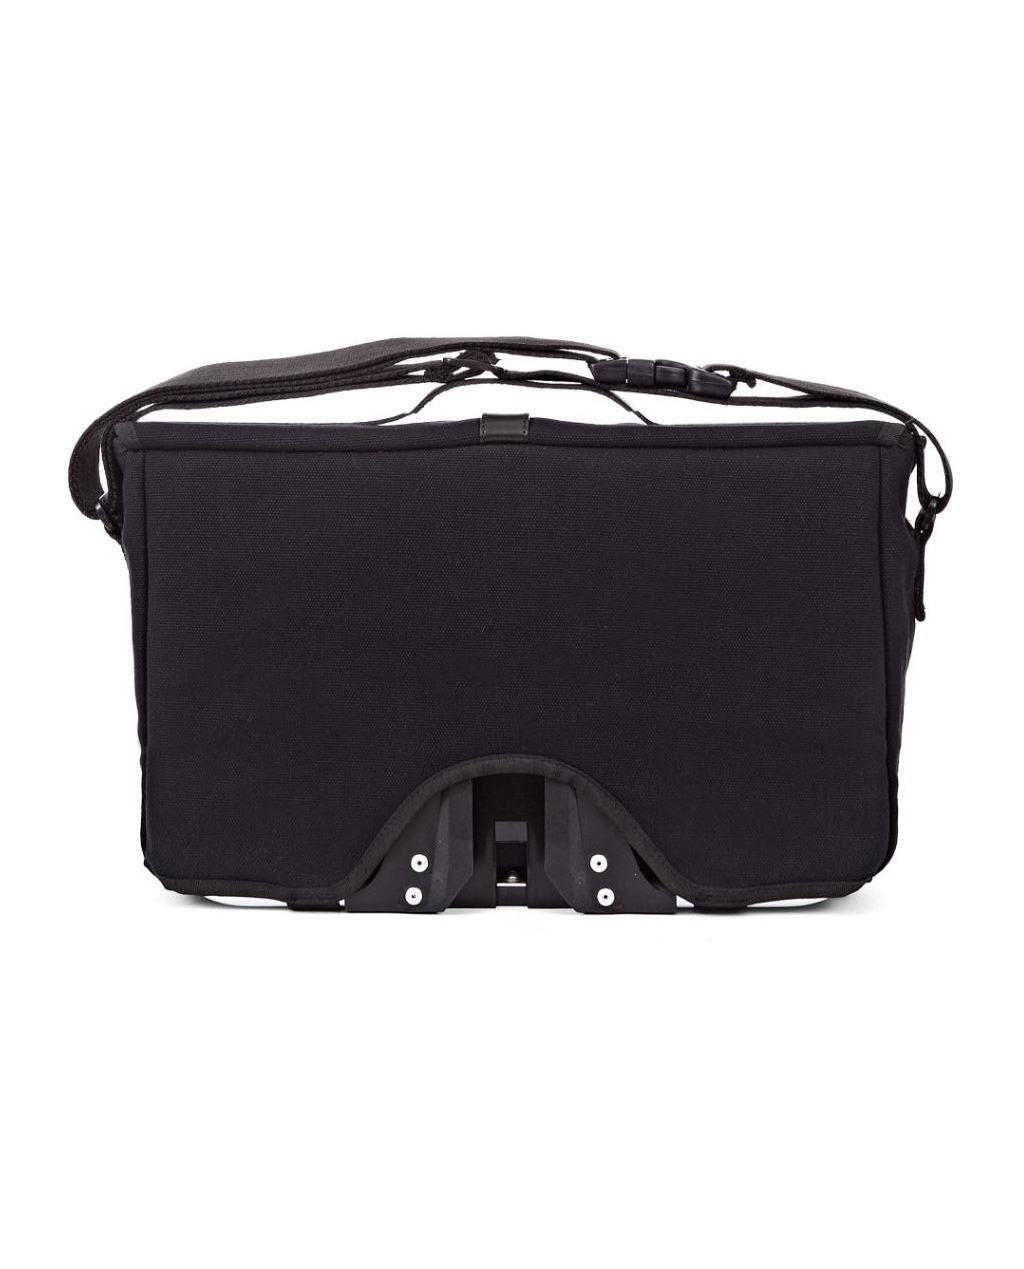 Q-Parts - Brompton Shoulder Bag - Black